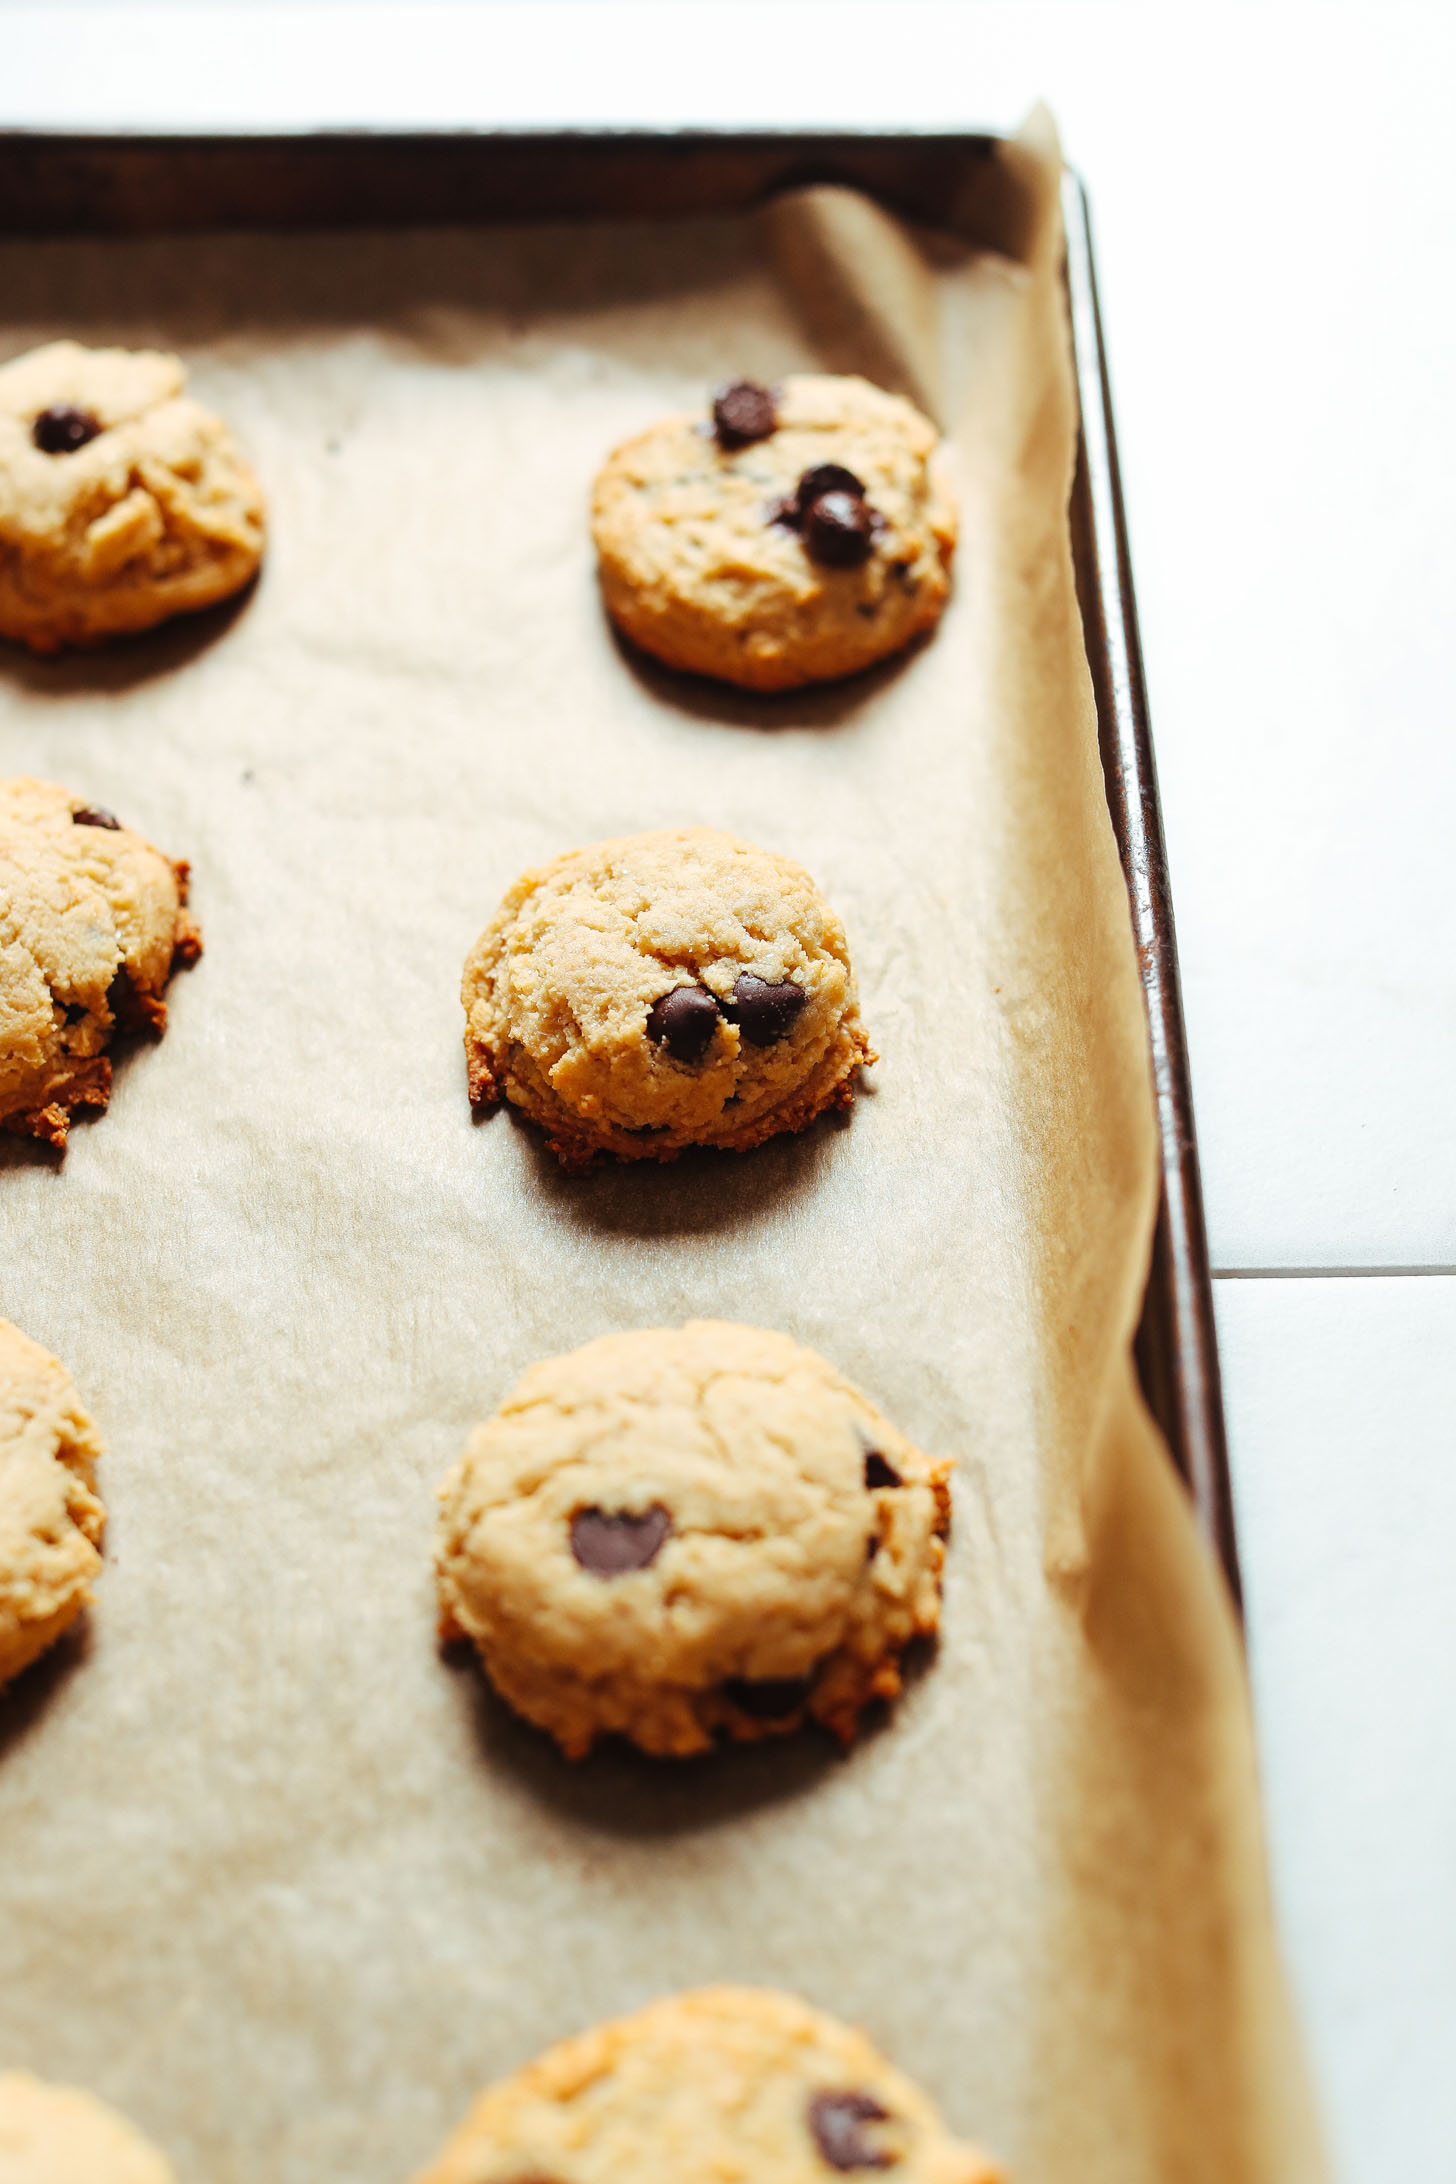 Parchment-lined baking sheet with a batch of Vegan Gluten-Free Chocolate Chip Cookies